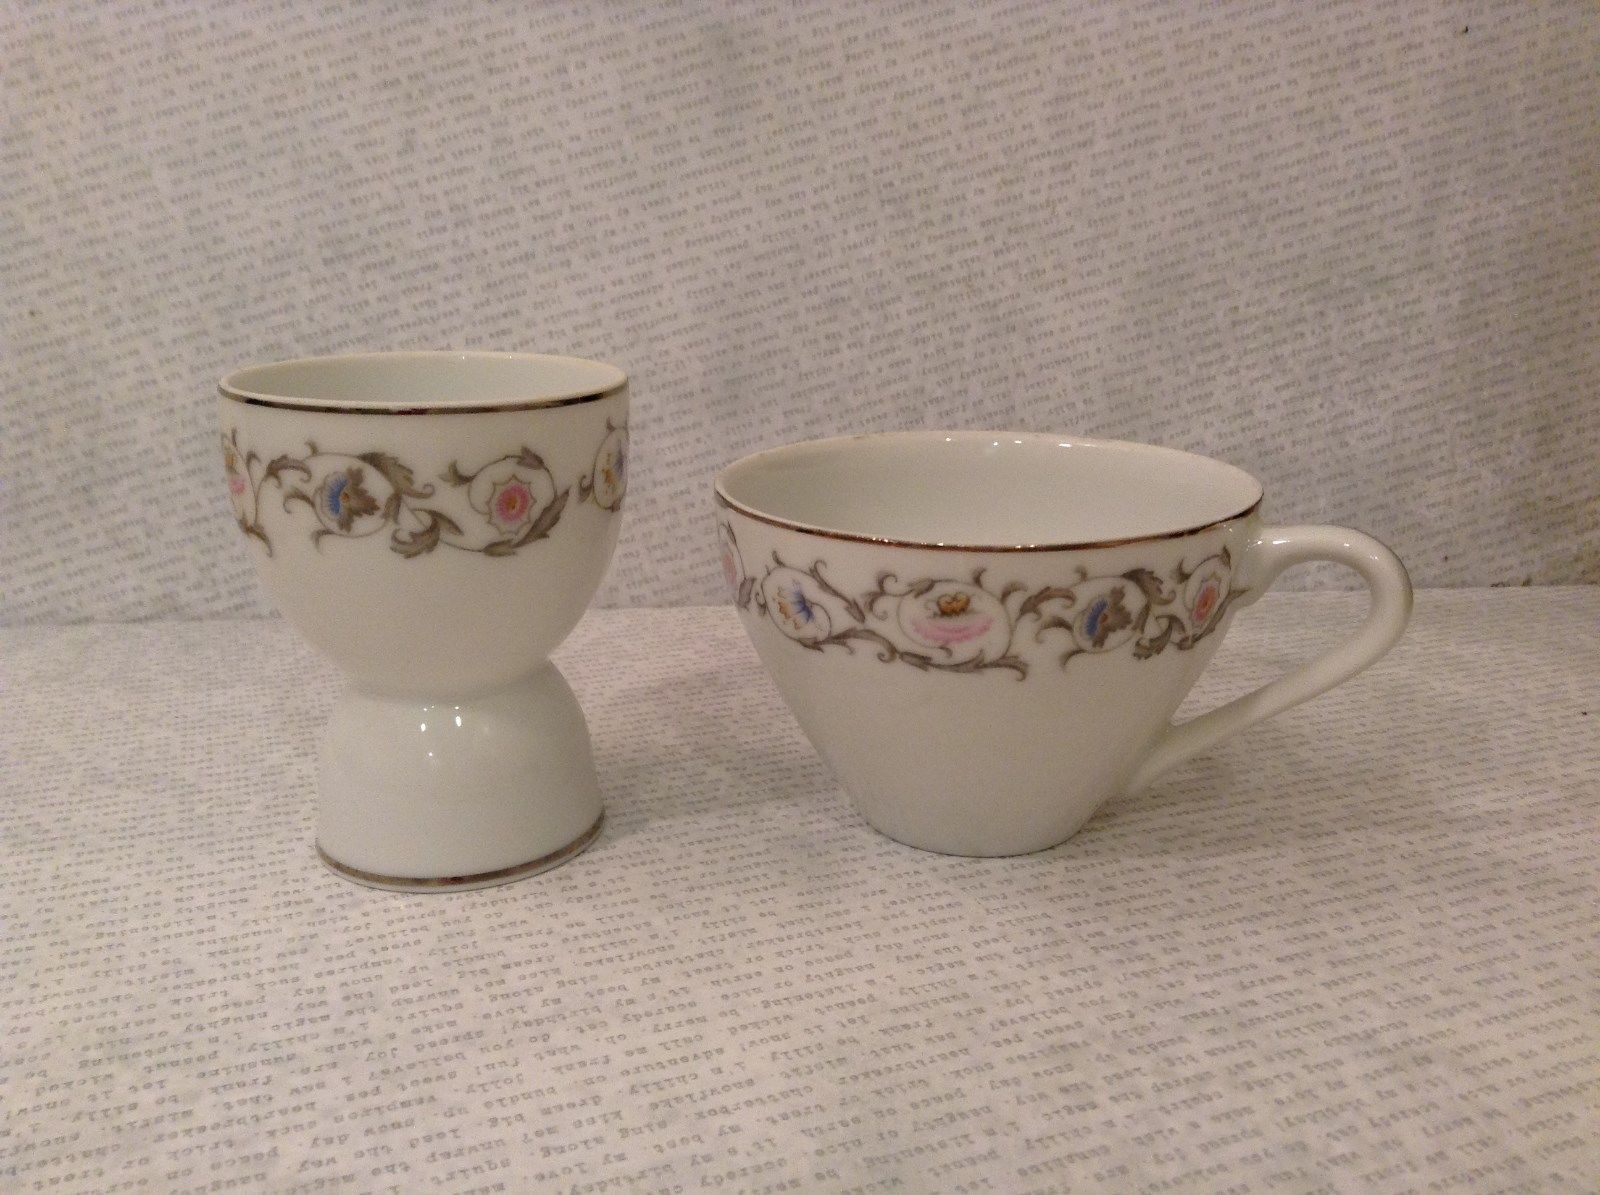 Egg Holder and Cup China Breakfast Set Yamaka White with Gray Pink Blue Flowers